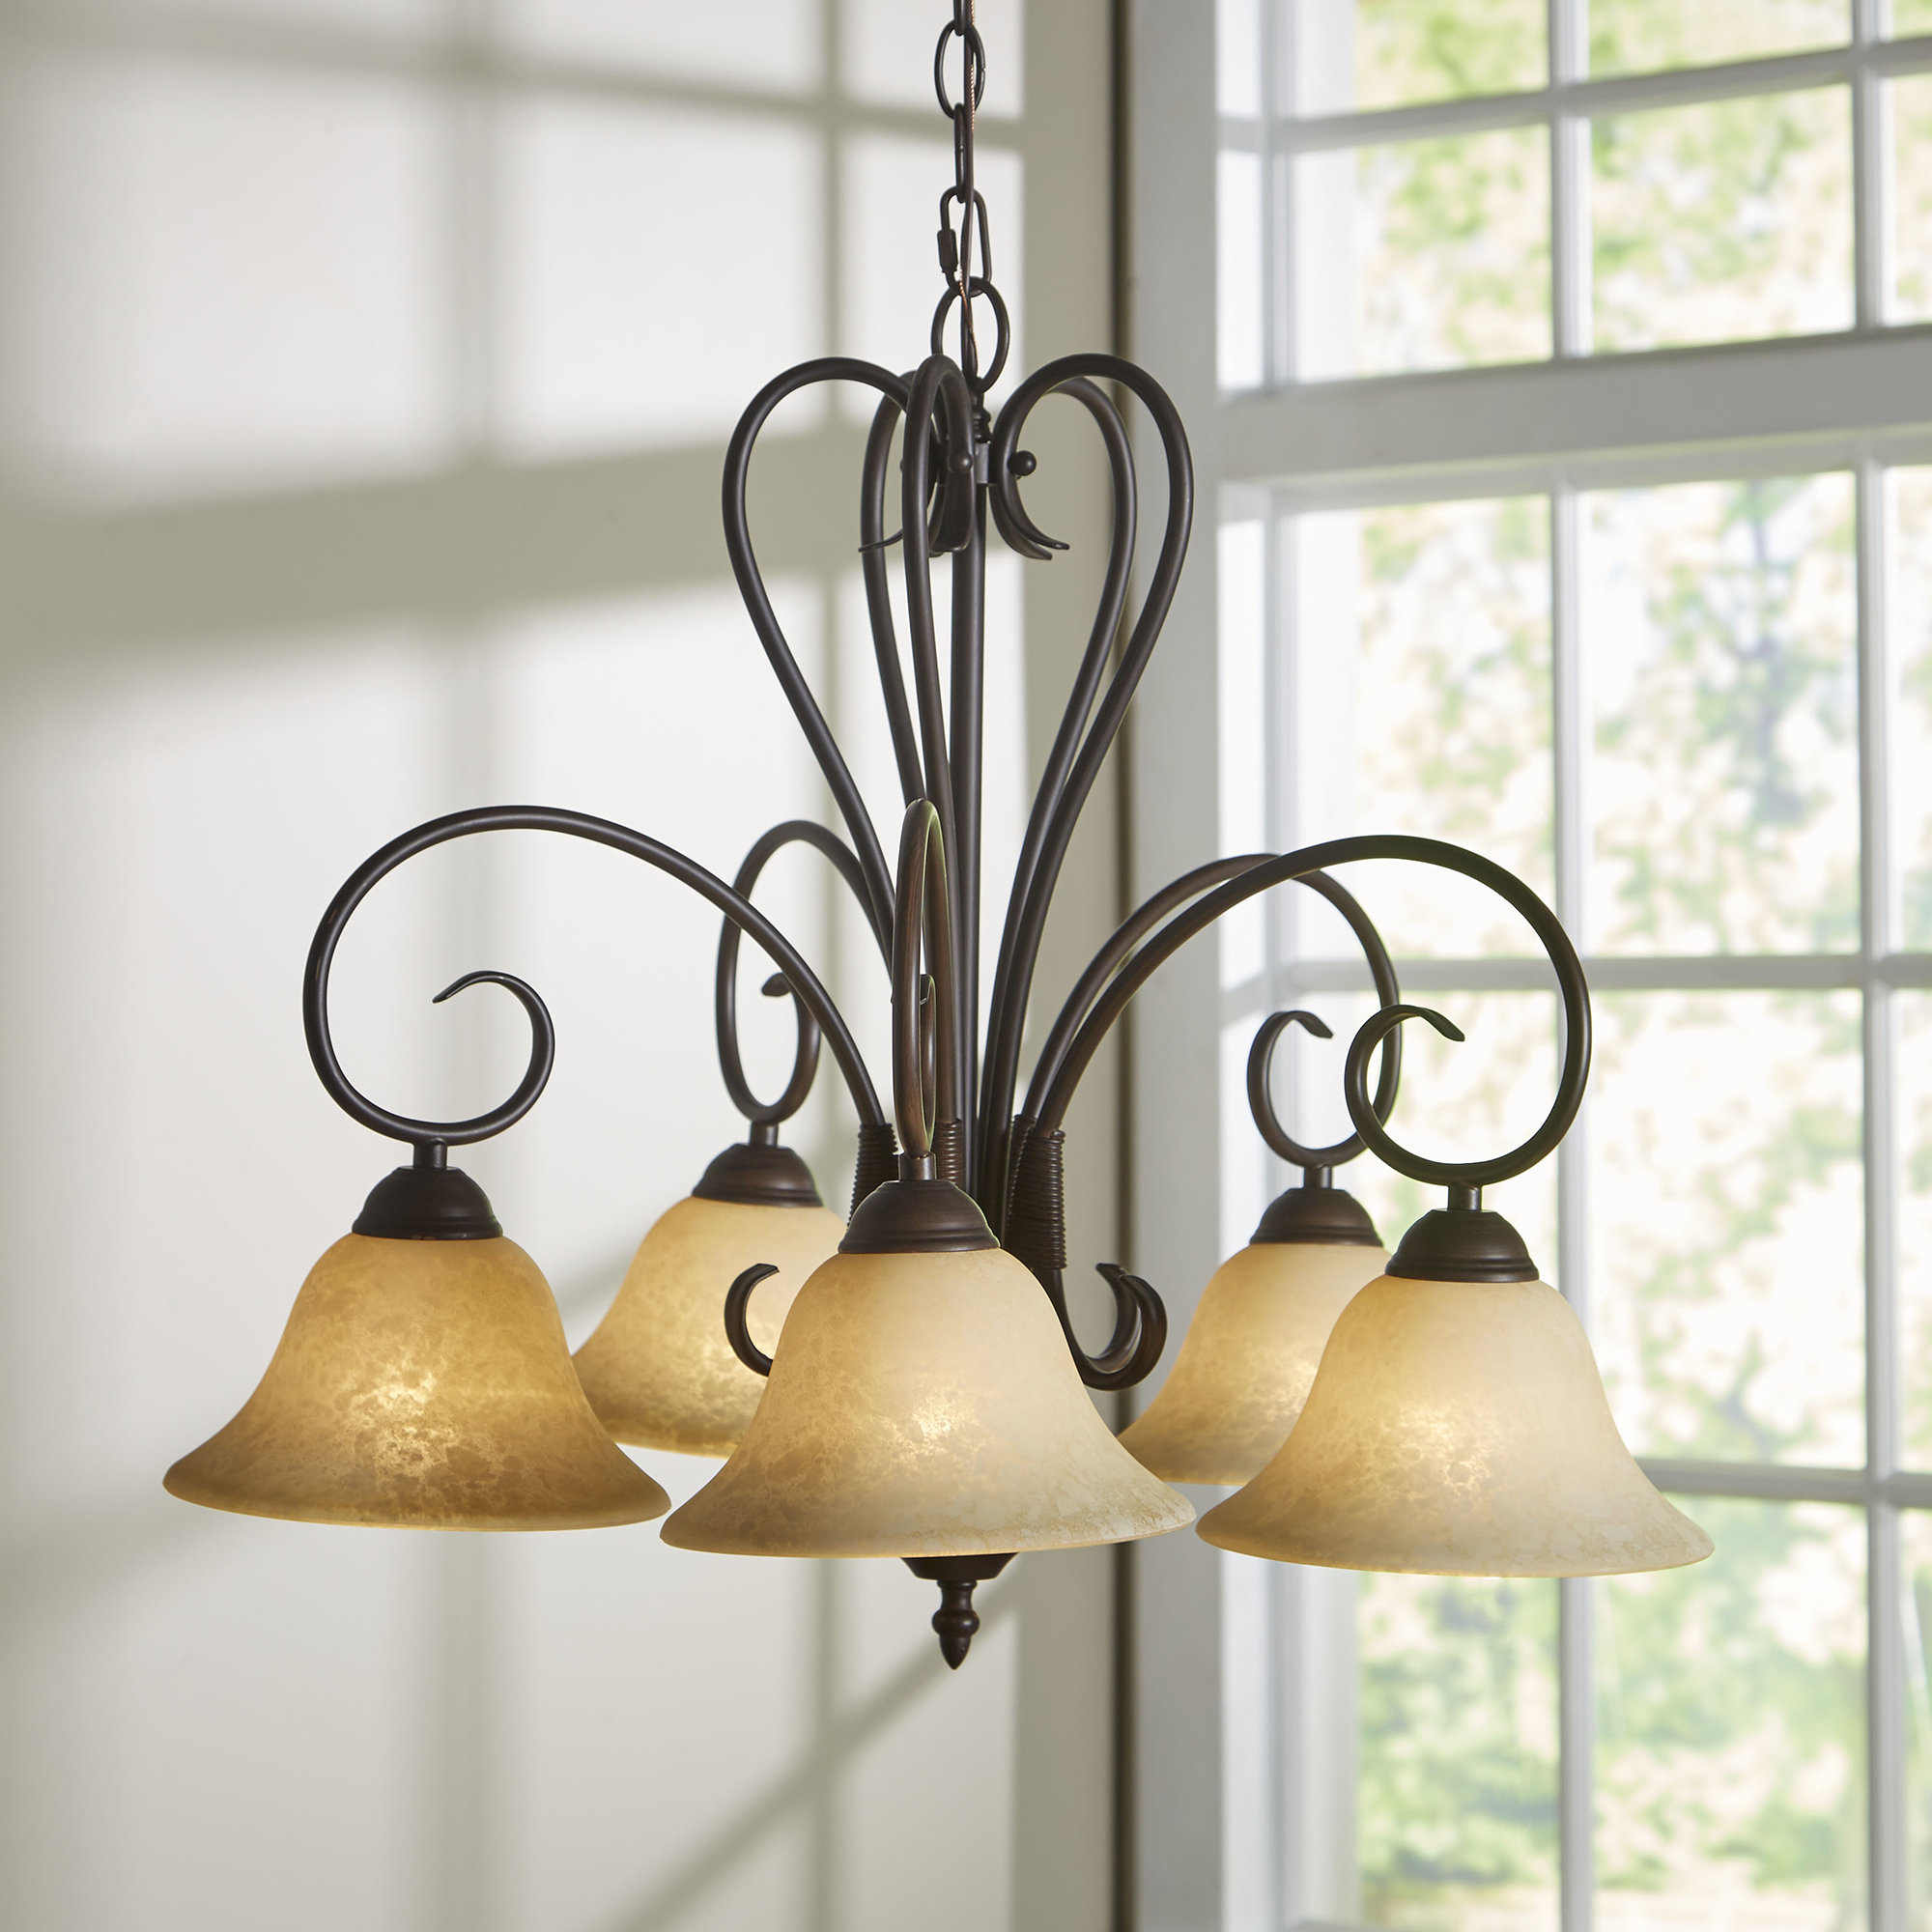 Widely Used Gaines 5 Light Shaded Chandelier With Hayden 5 Light Shaded Chandeliers (Gallery 14 of 20)